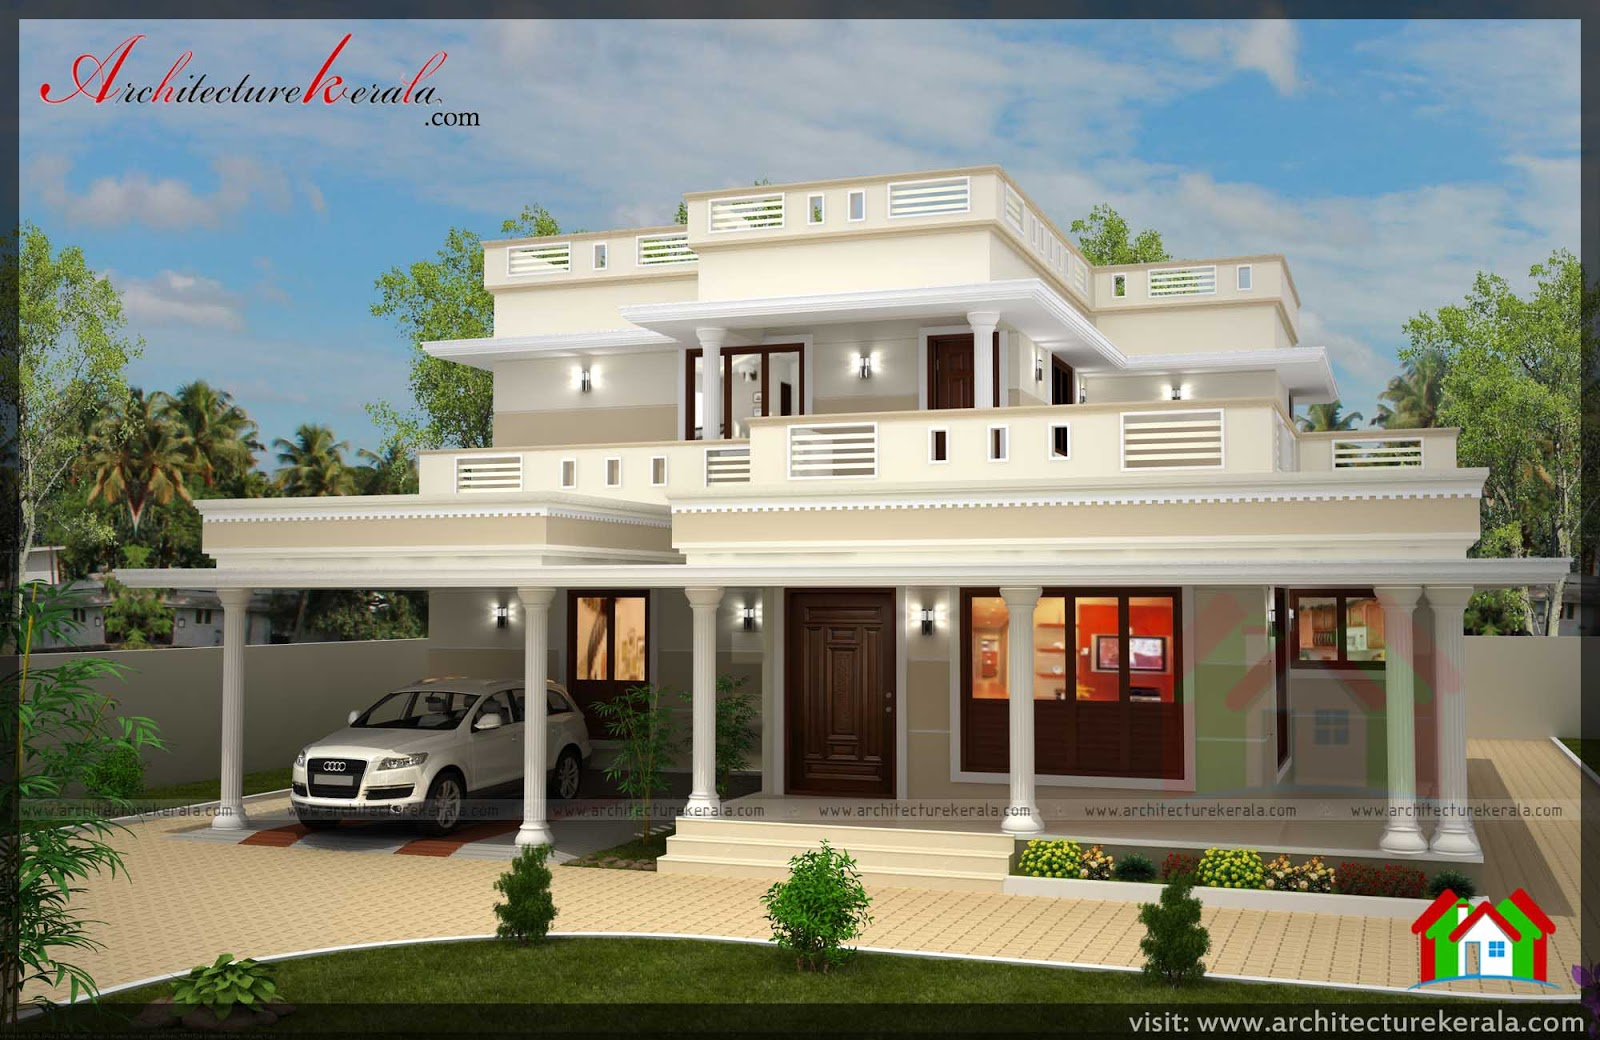 4 bed house plan with pooja room architecture kerala for Home design pictures